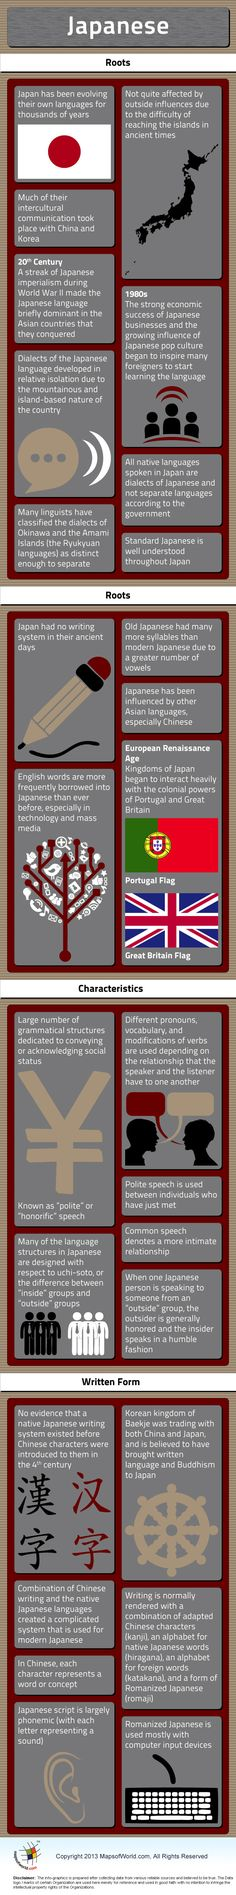 Japanese Language – Facts & Infographic